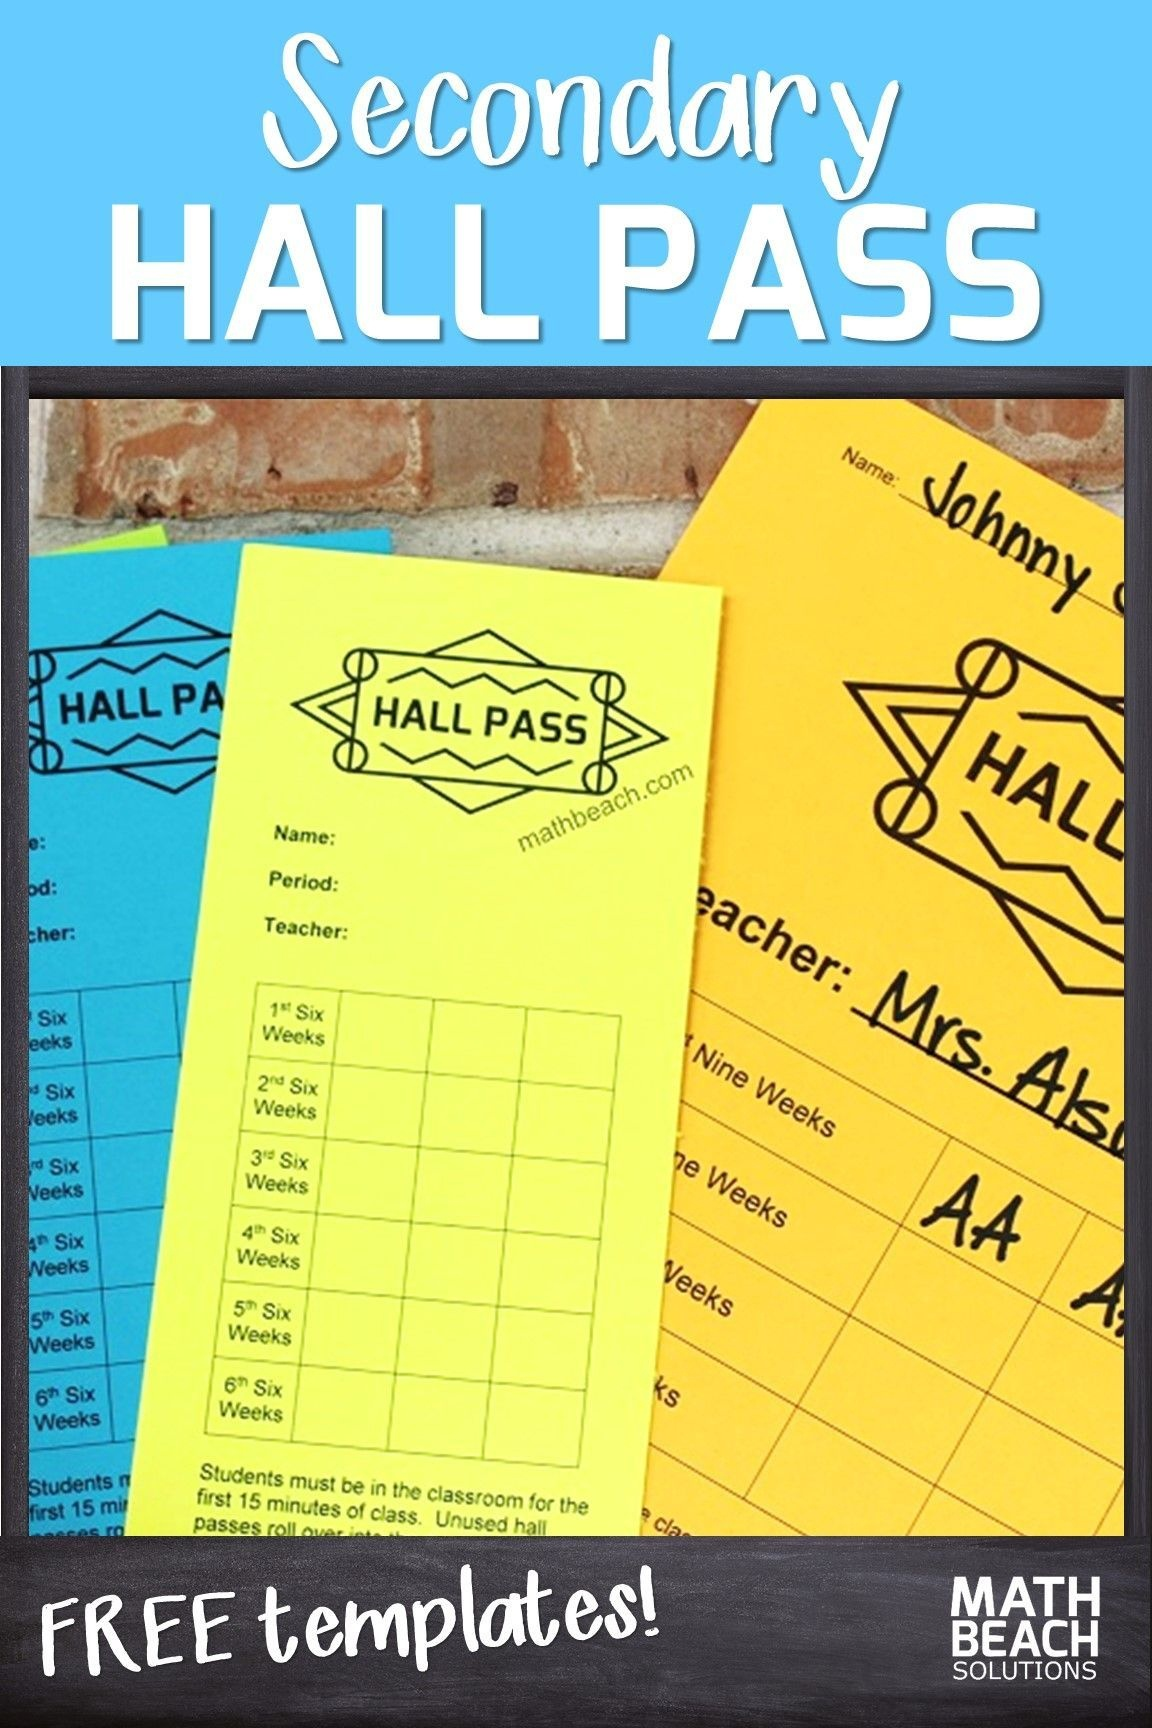 High School Hall Pass | Classroom Procedures For High School Math - Free Printable Hall Pass Template